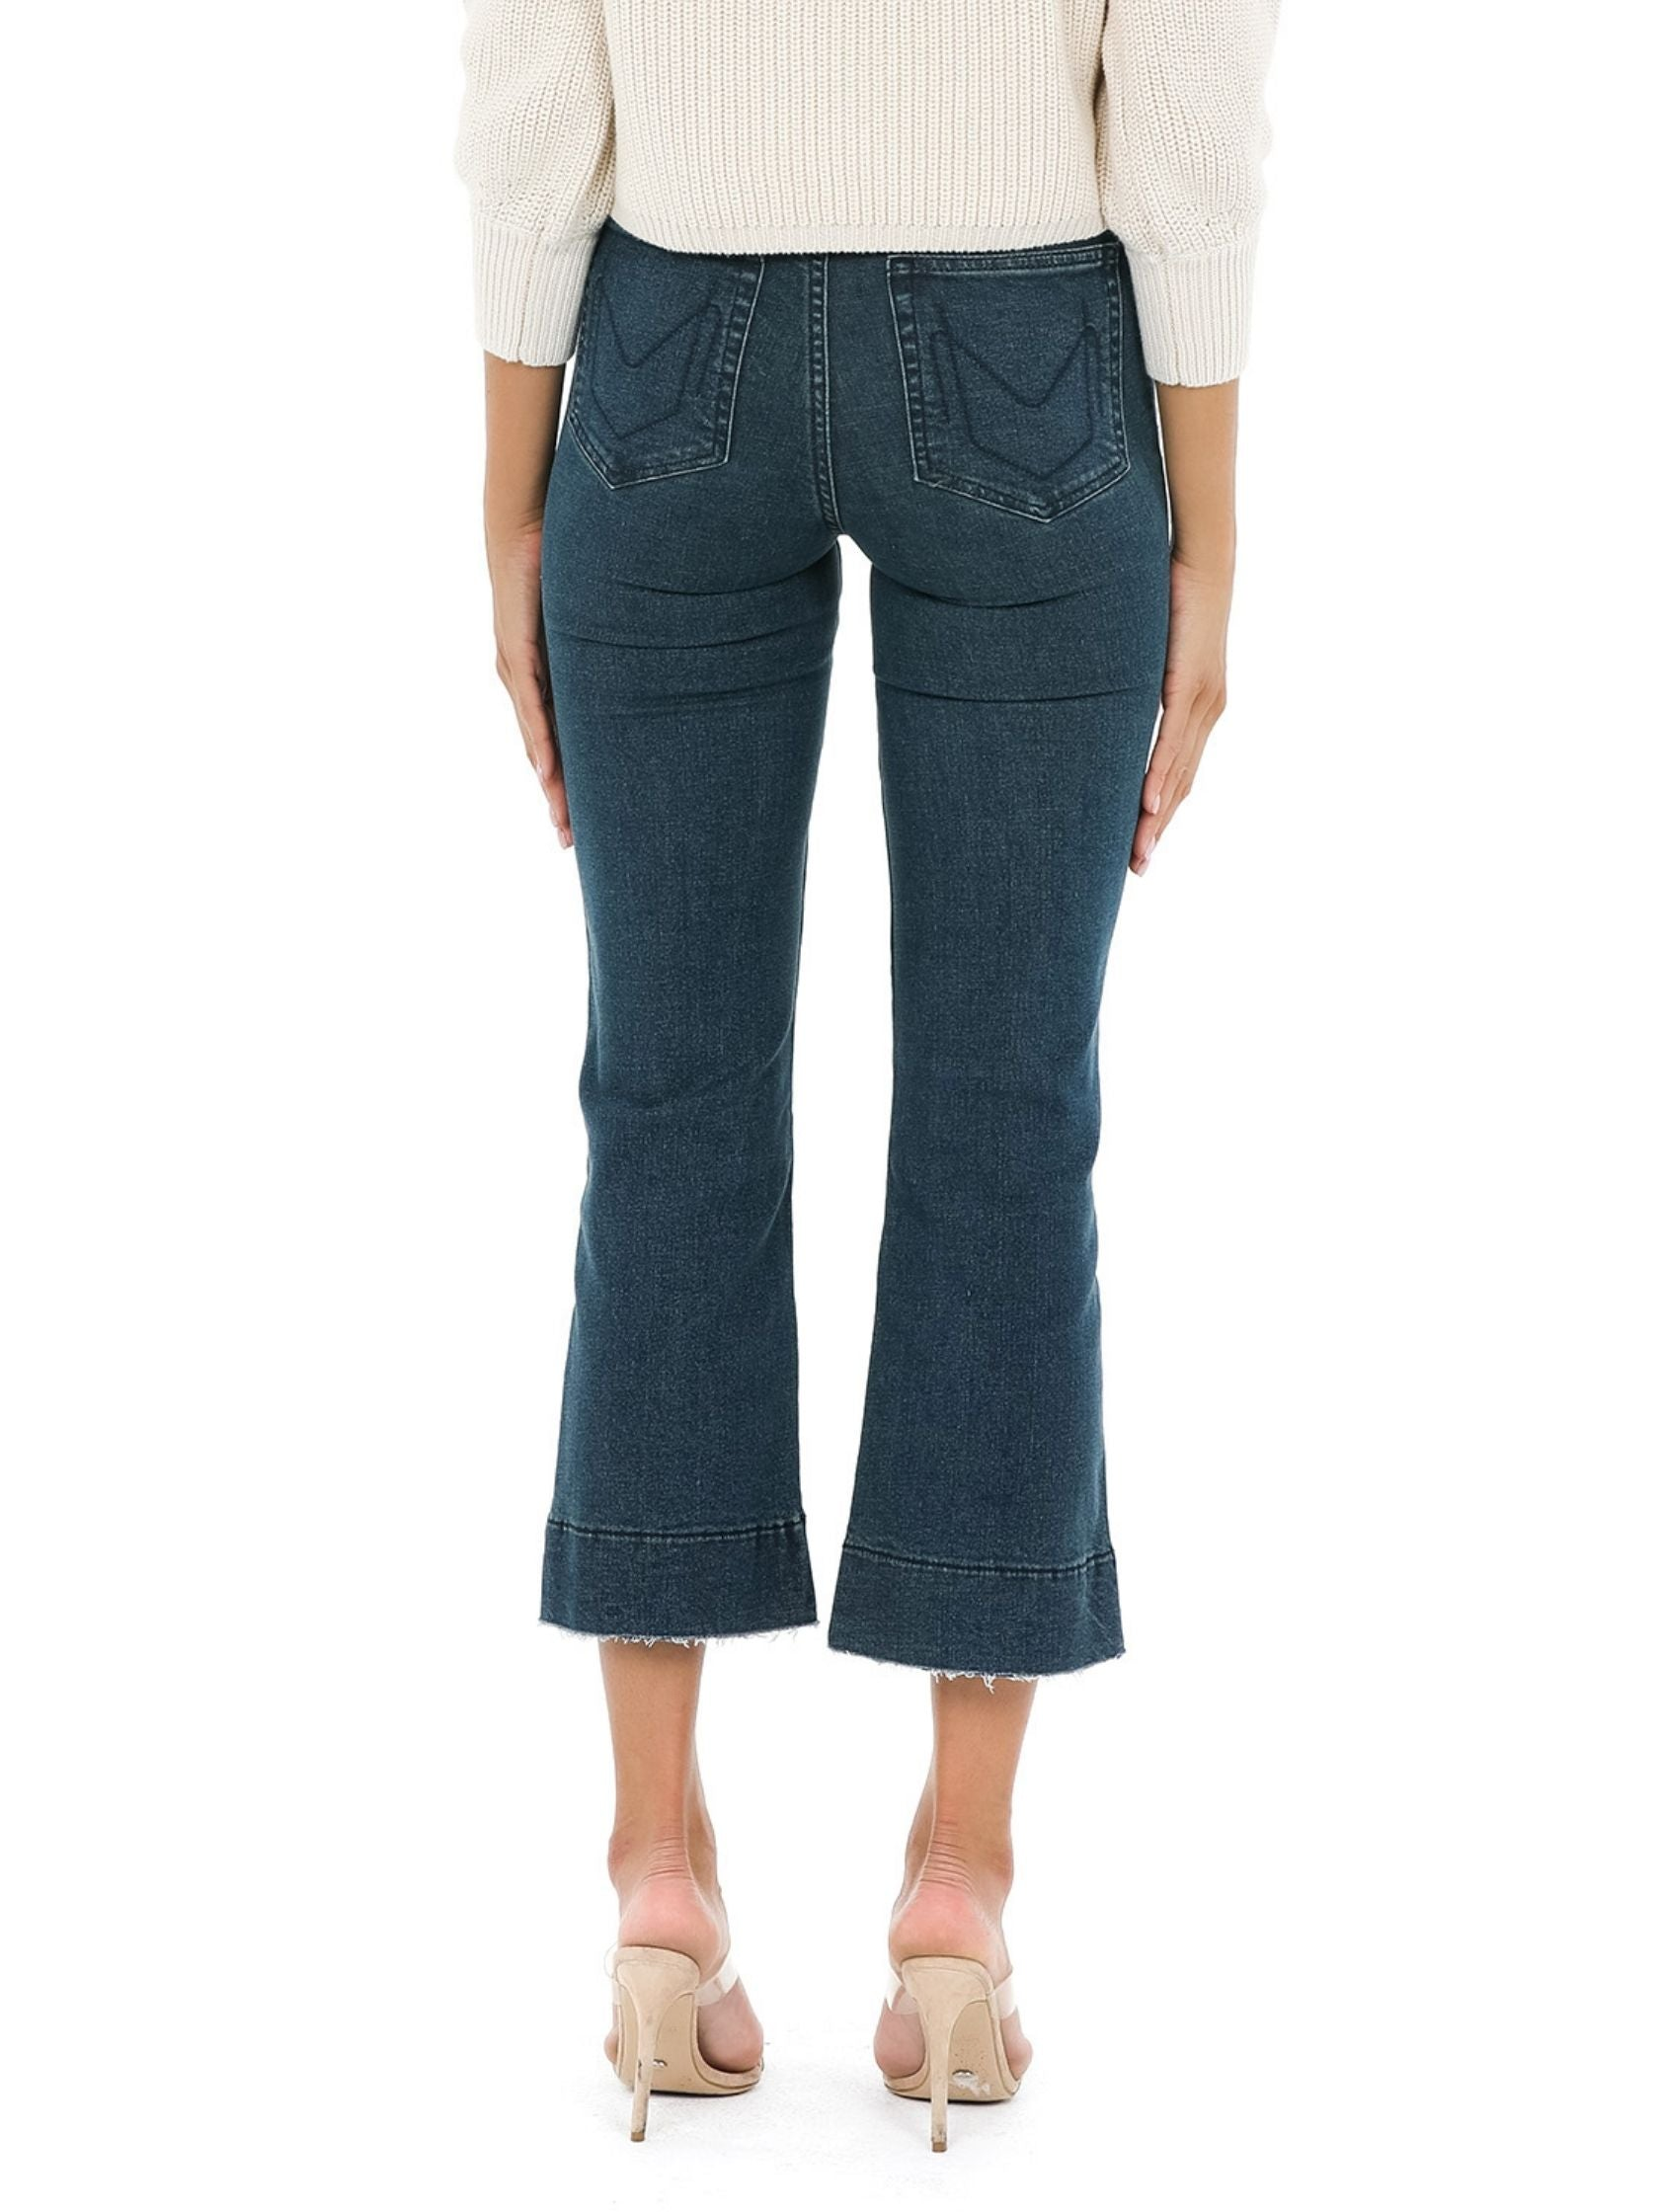 Women outfit in a denim rental from Show Me Your Mumu called Cropped Farah Trouser